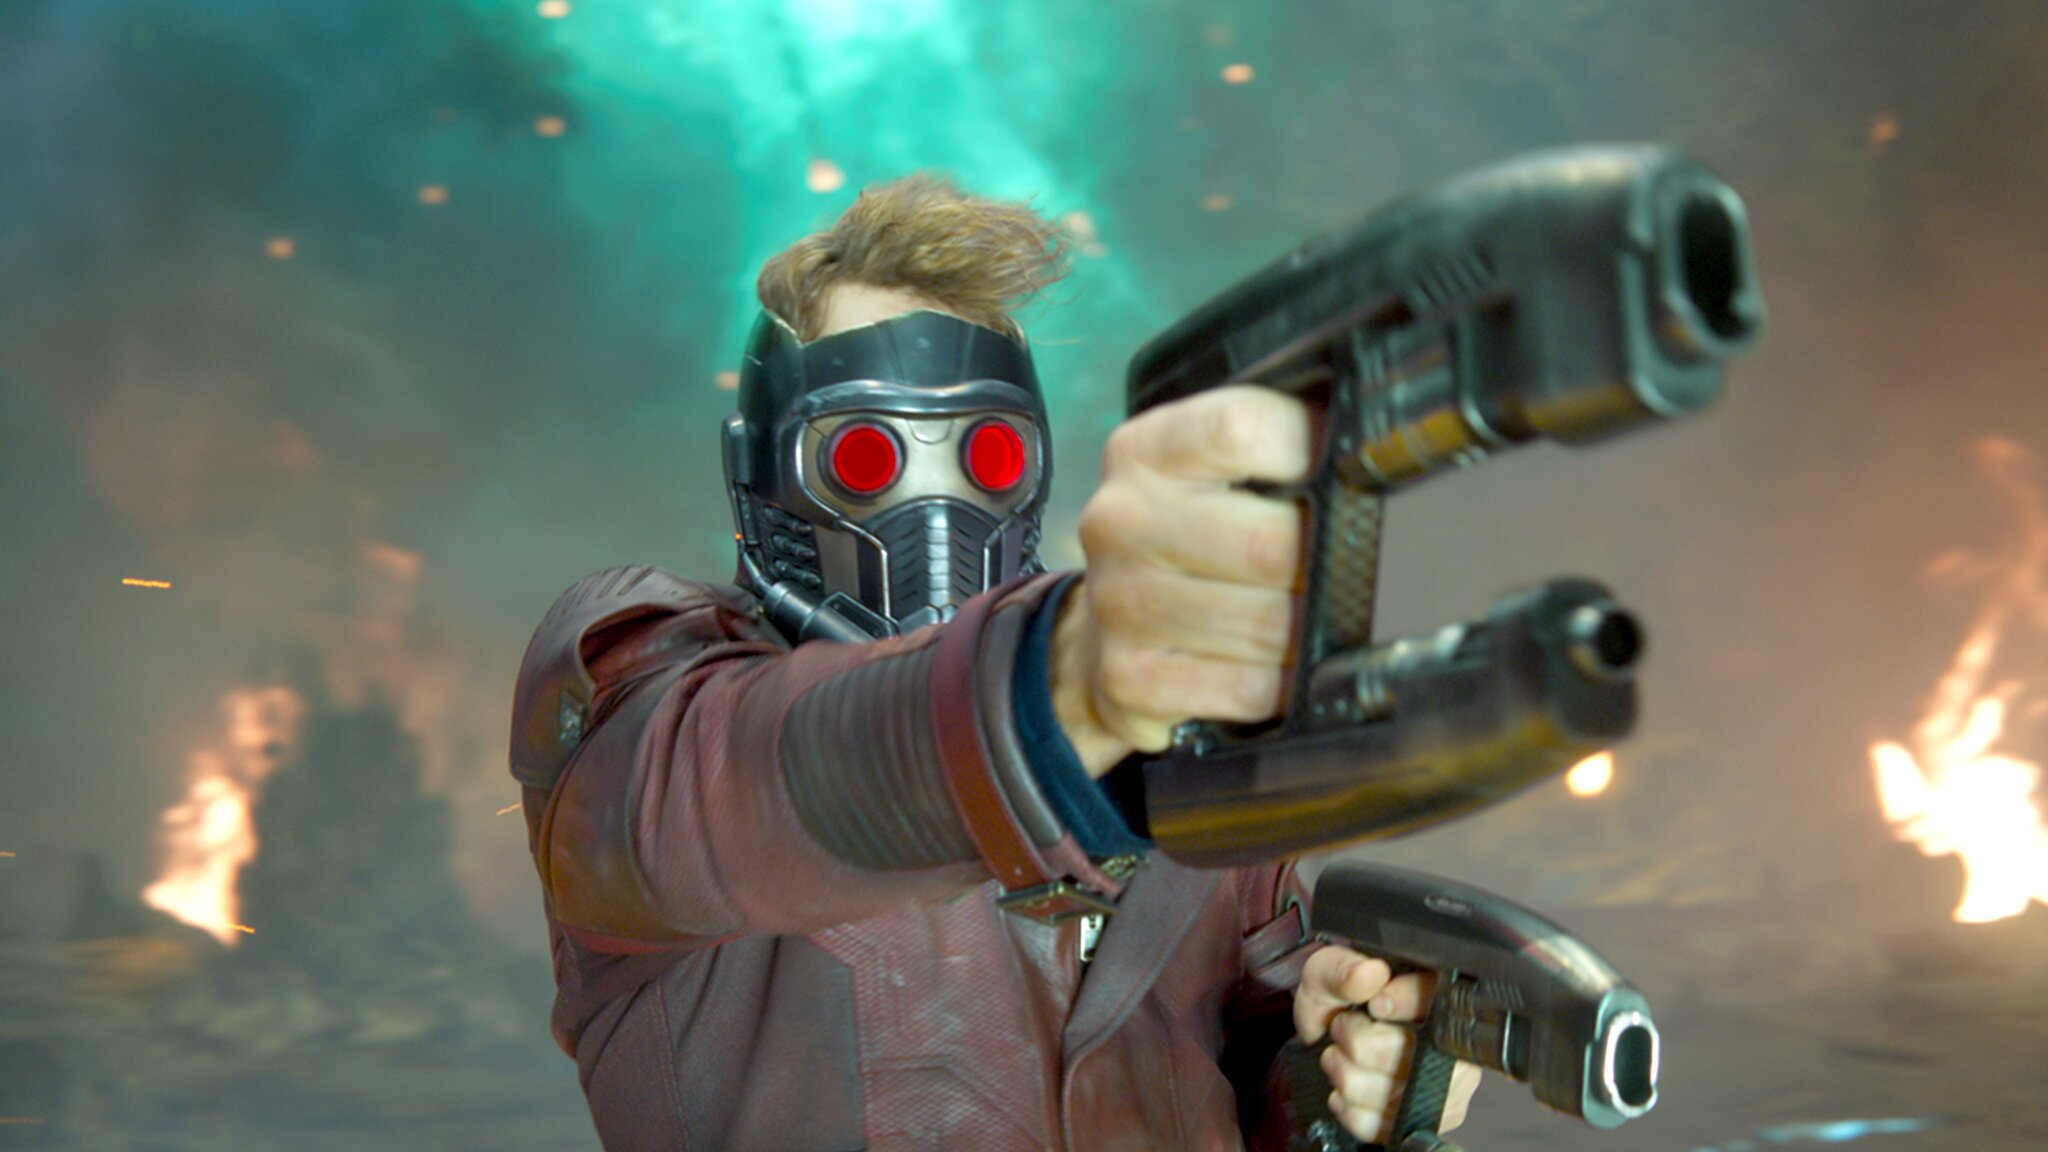 Guardians Of The Galaxy Star Lord Abstract Art 4k Hd: 2048x1152 Star Lord In Guardians Of The Galaxy 2048x1152